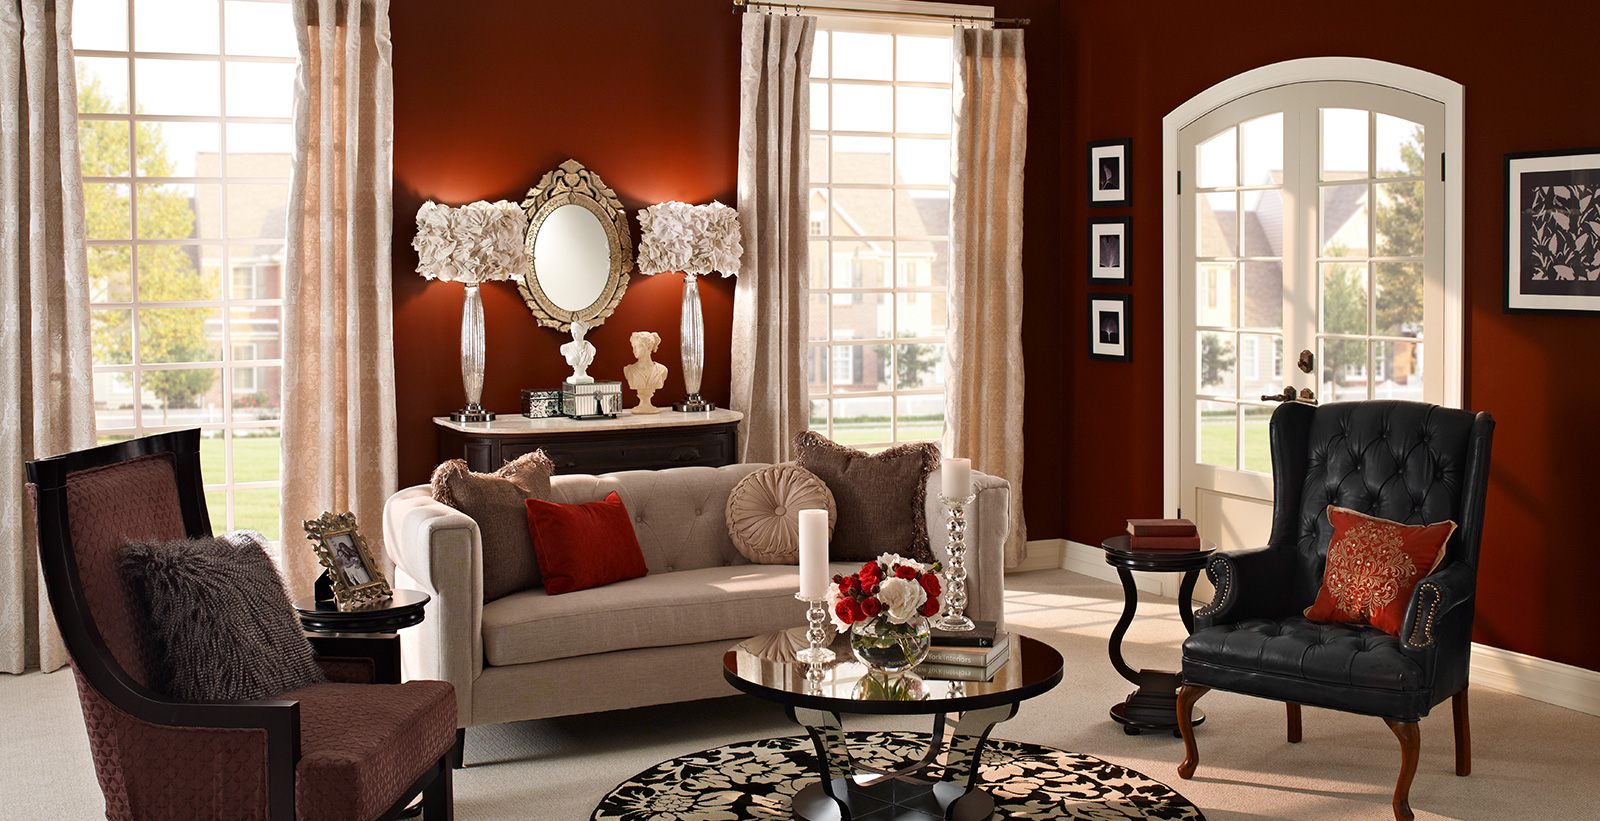 Formal living room with deep red on walls, white on trim, light tan tufted couch, and black round coffee table